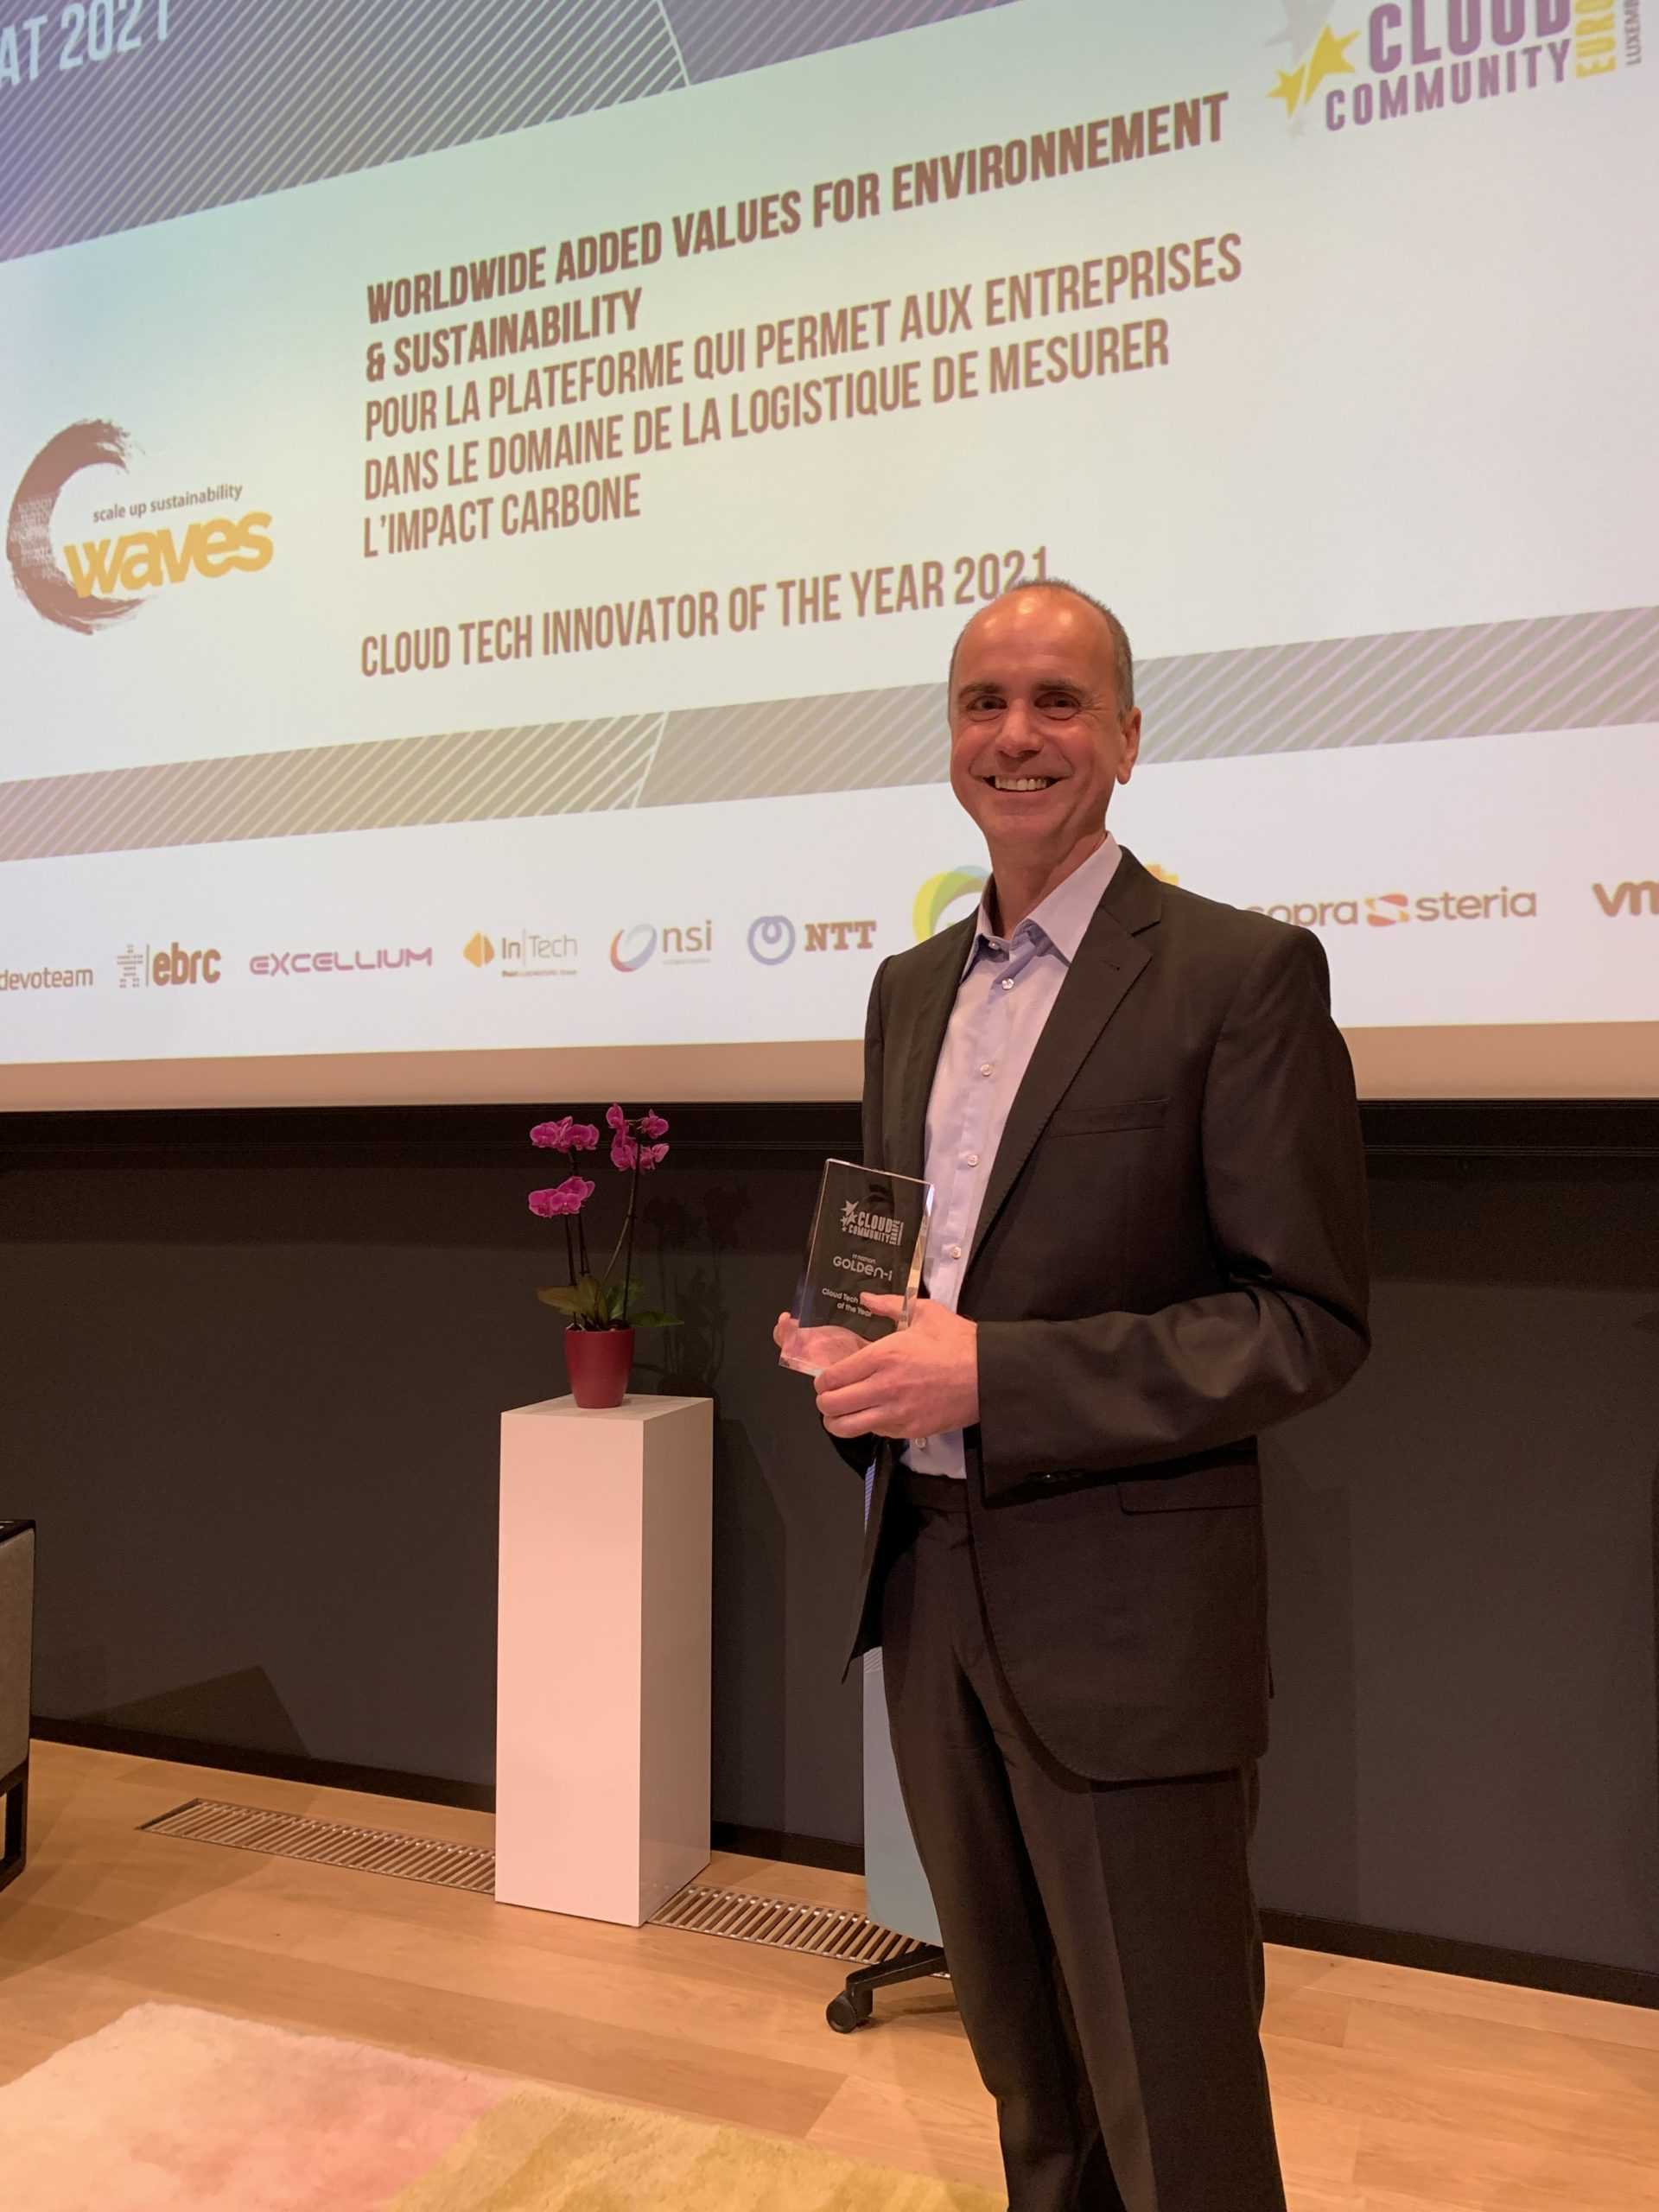 Cloud Tech Innovator of the Year_WAVES_Armin Neises